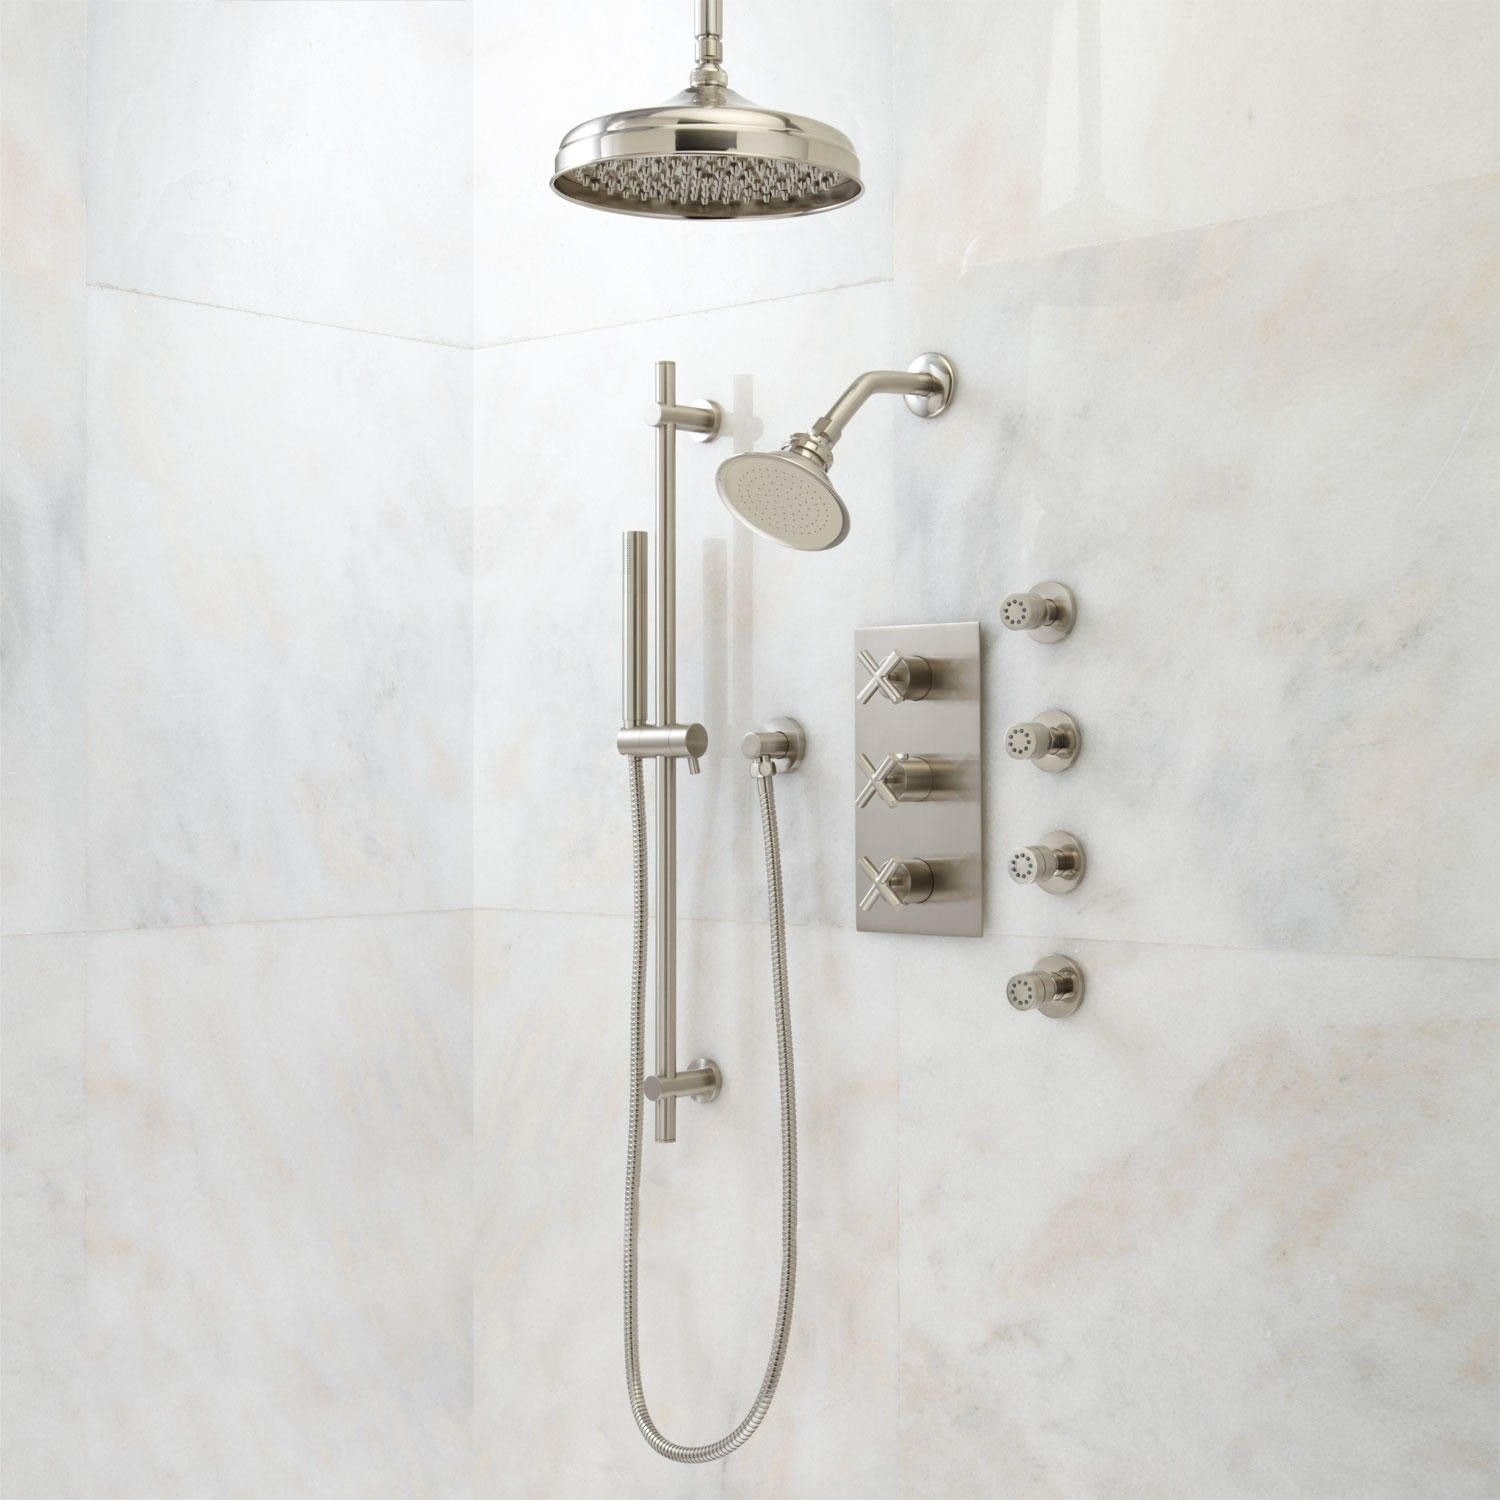 Exira Thermostatic Shower System Dual Shower Heads Hand Shower